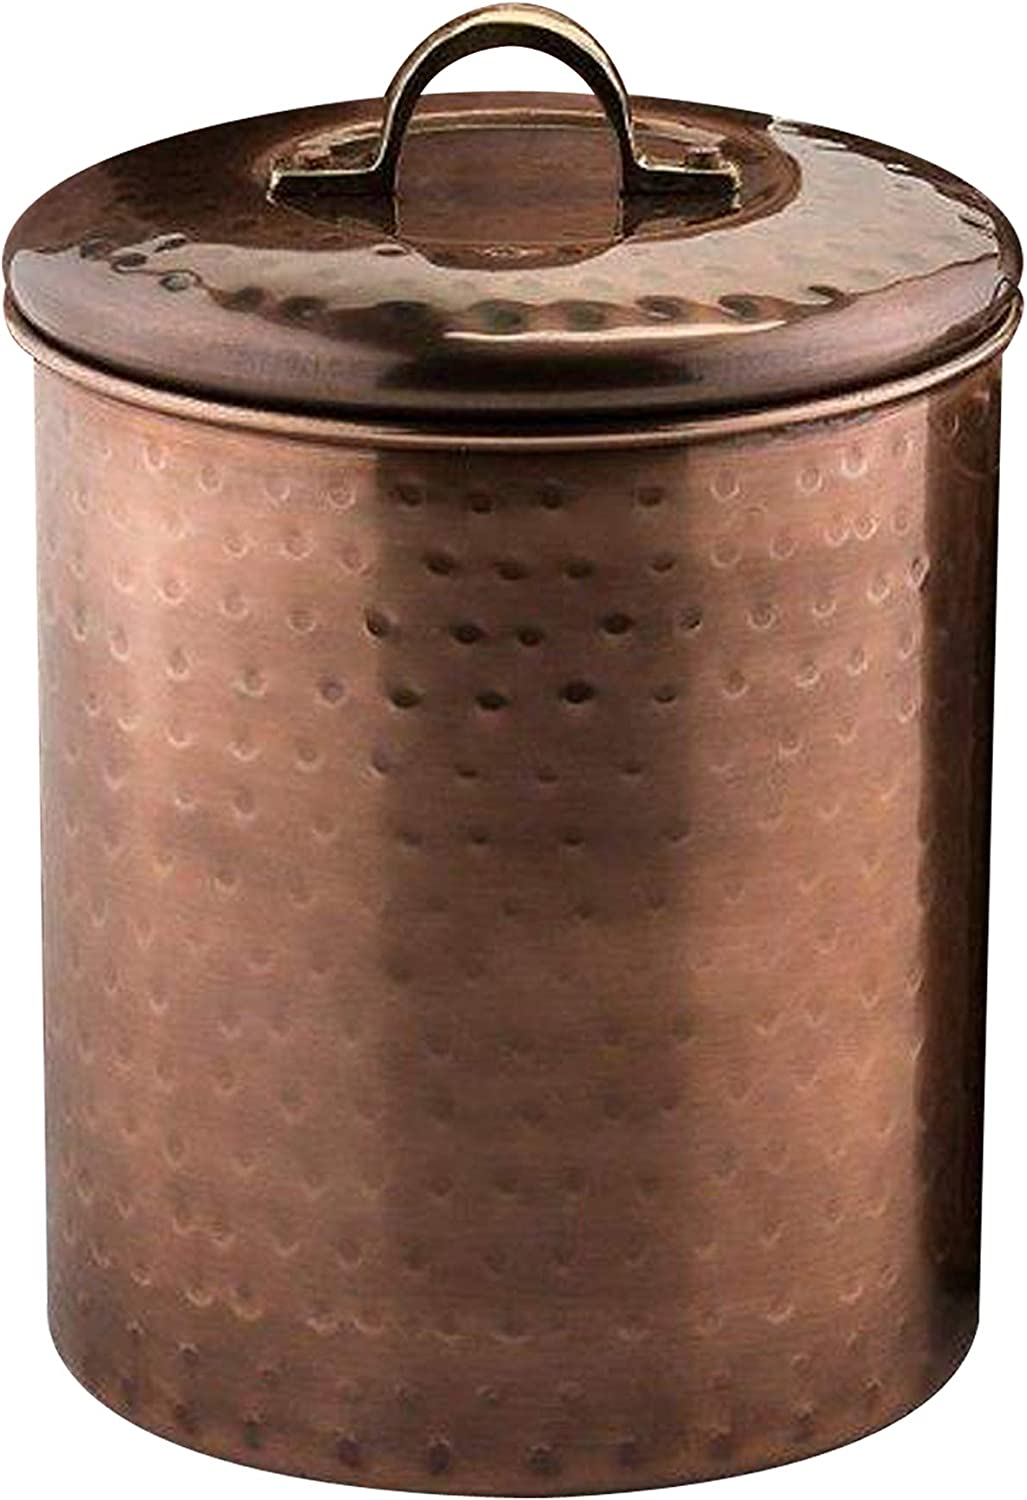 NuSteel Hammered 1.5 QT Stainless Steel, Beautiful Food Storage Container for Kitchen Counter, Tea, Sugar, Coffee, Caddy, Flour Canister with Rubber Seal lid, Copper Antique